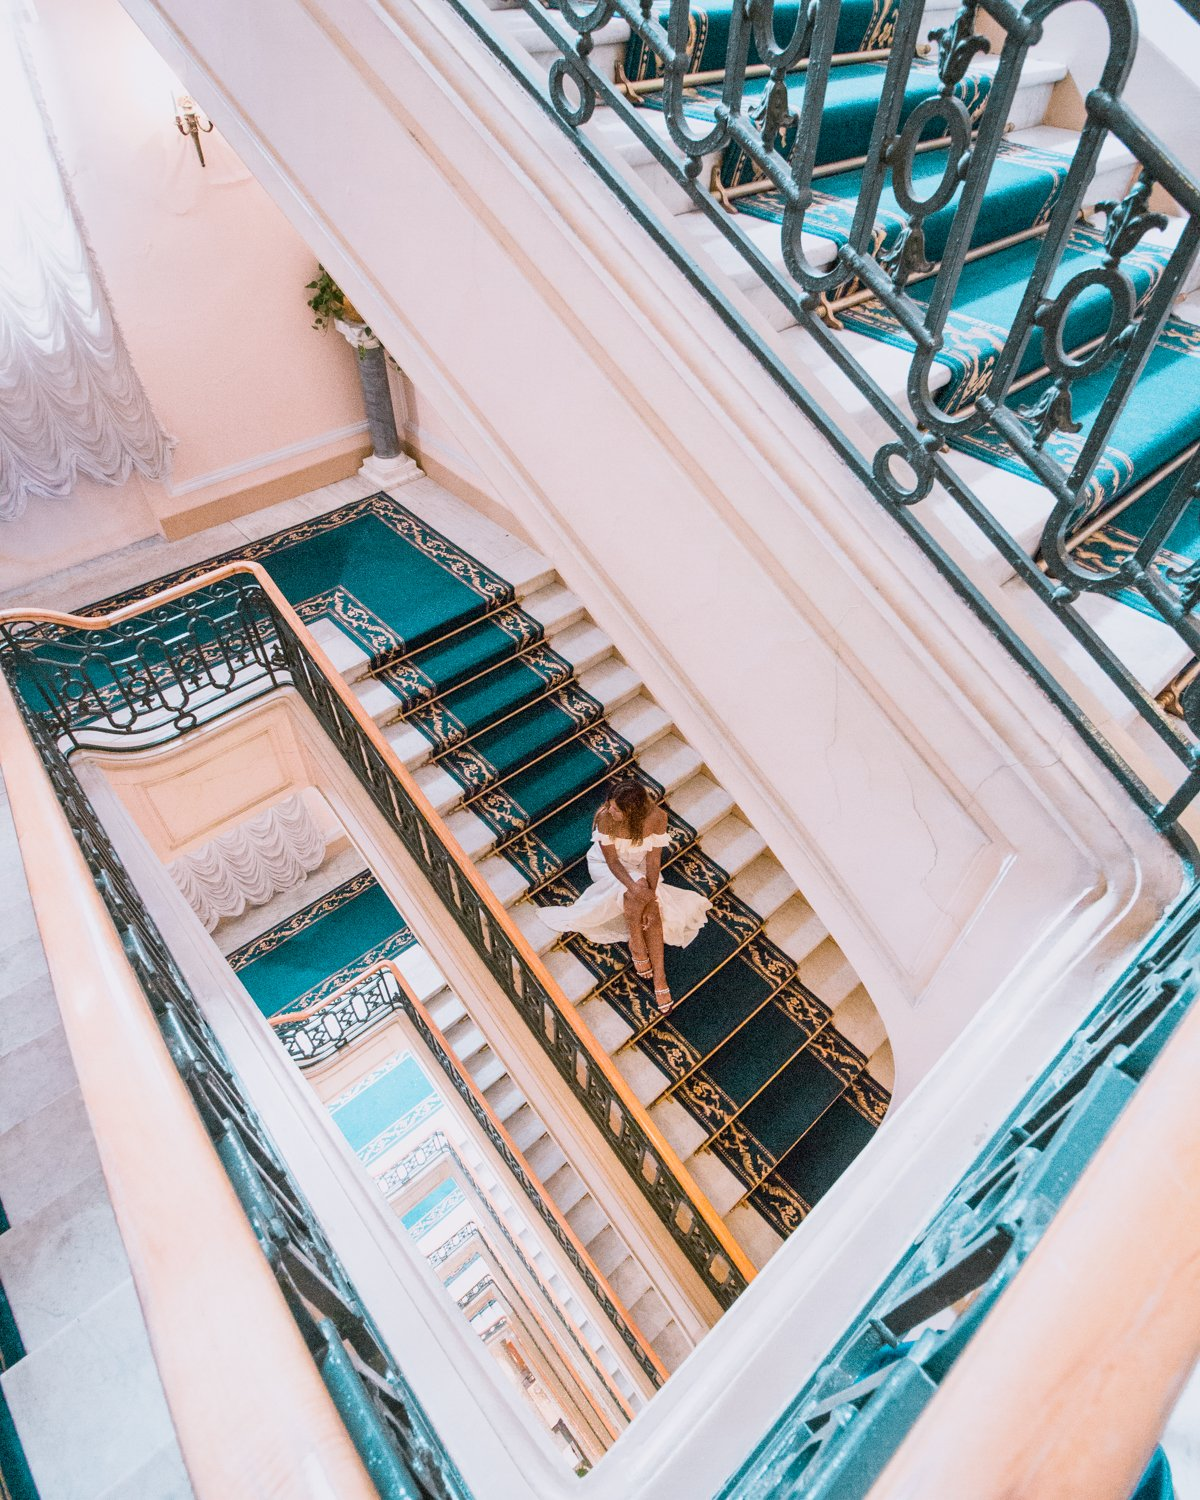 Staying at Eurostars Hotel Excelsior in Naples